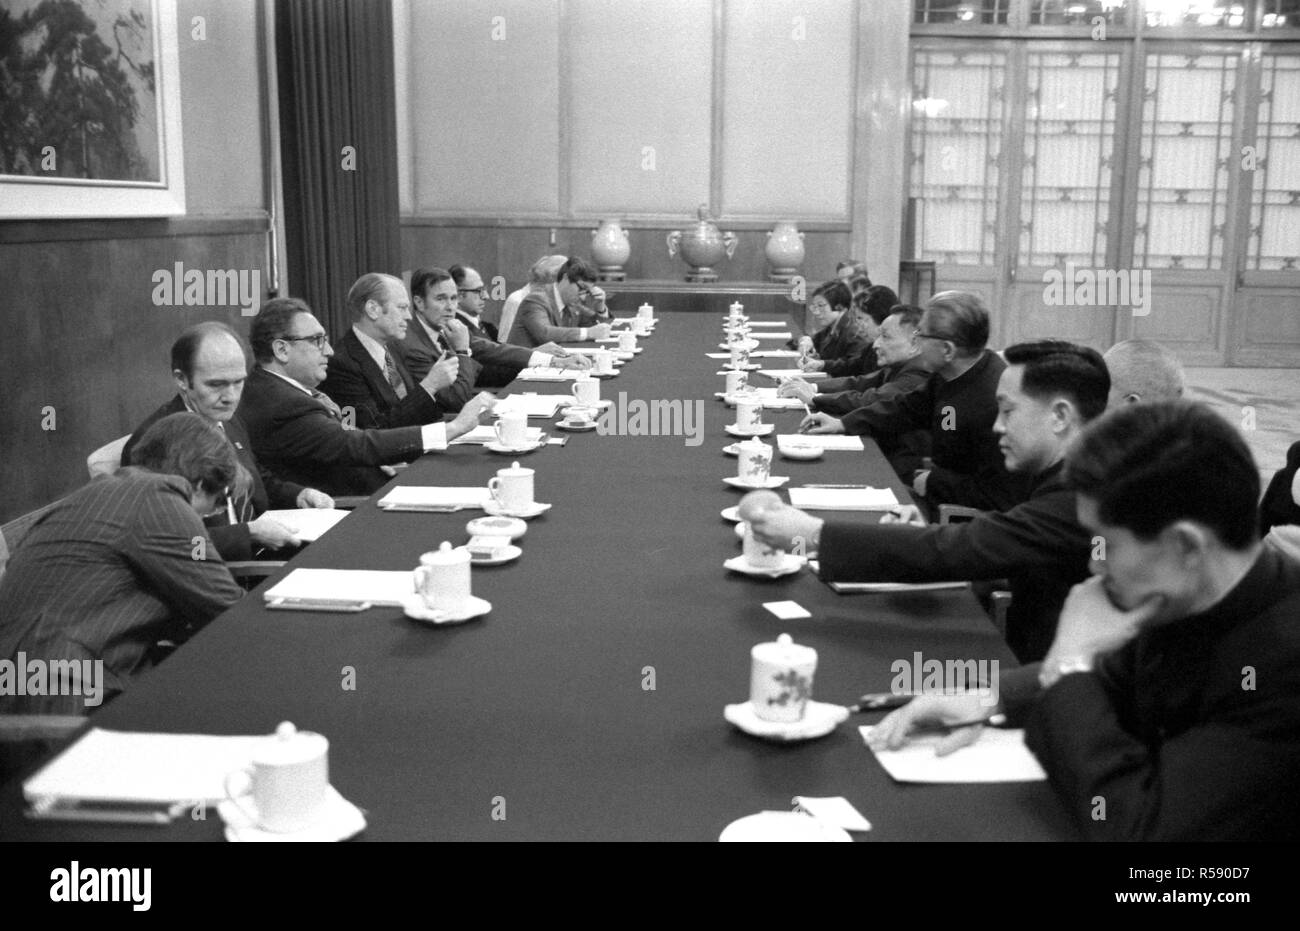 This photograph depicts President Ford, Secretary of State Henry Kissinger, Chief U.S. Liaison Officer George H. W. Bush and the President's staff as they hold bilateral talks with People's Republic of China (PRC) Vice-Premier Teng Hsiao-P'ing and other officials in the Great Hall of the People. - Stock Image